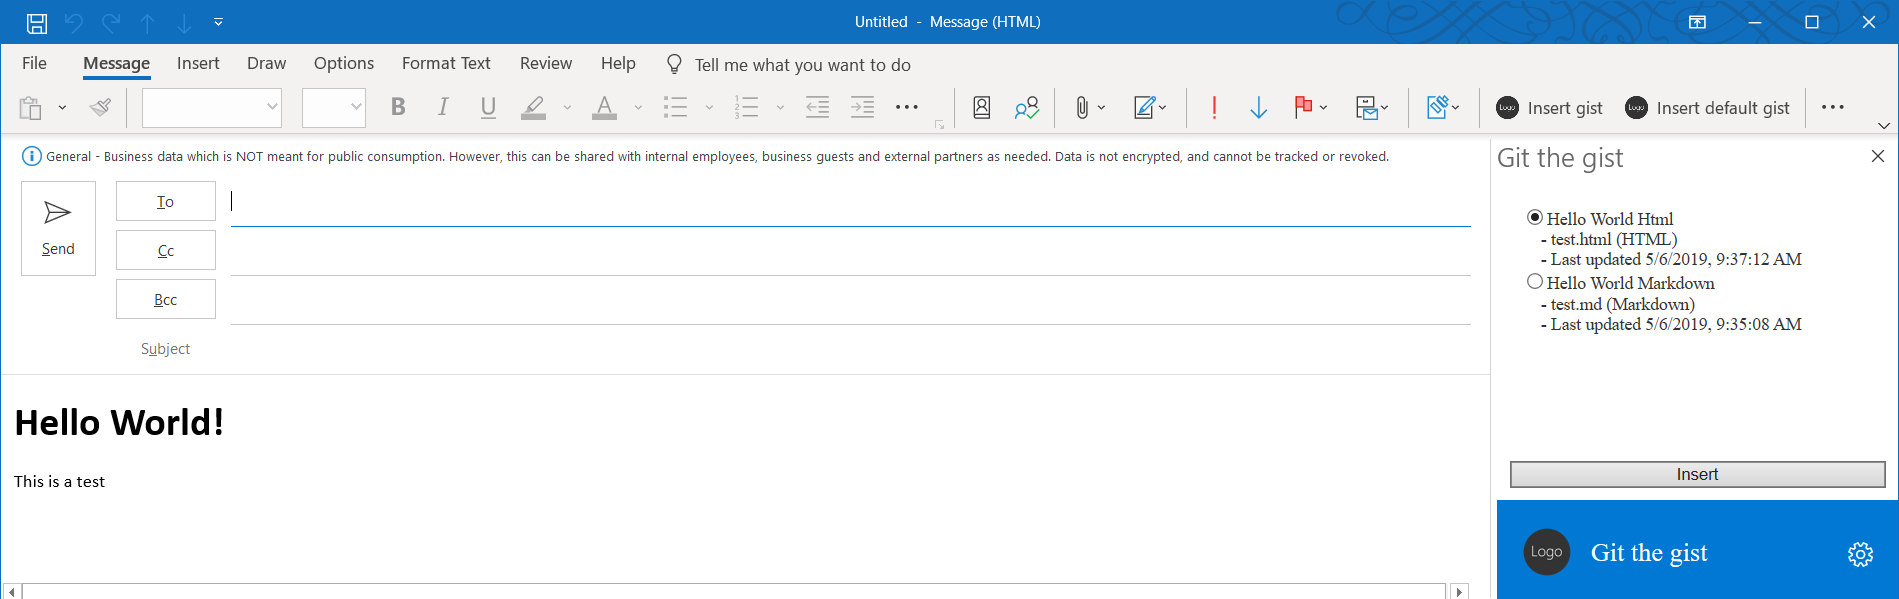 Tutorial: Build a message compose Outlook add-in - Outlook